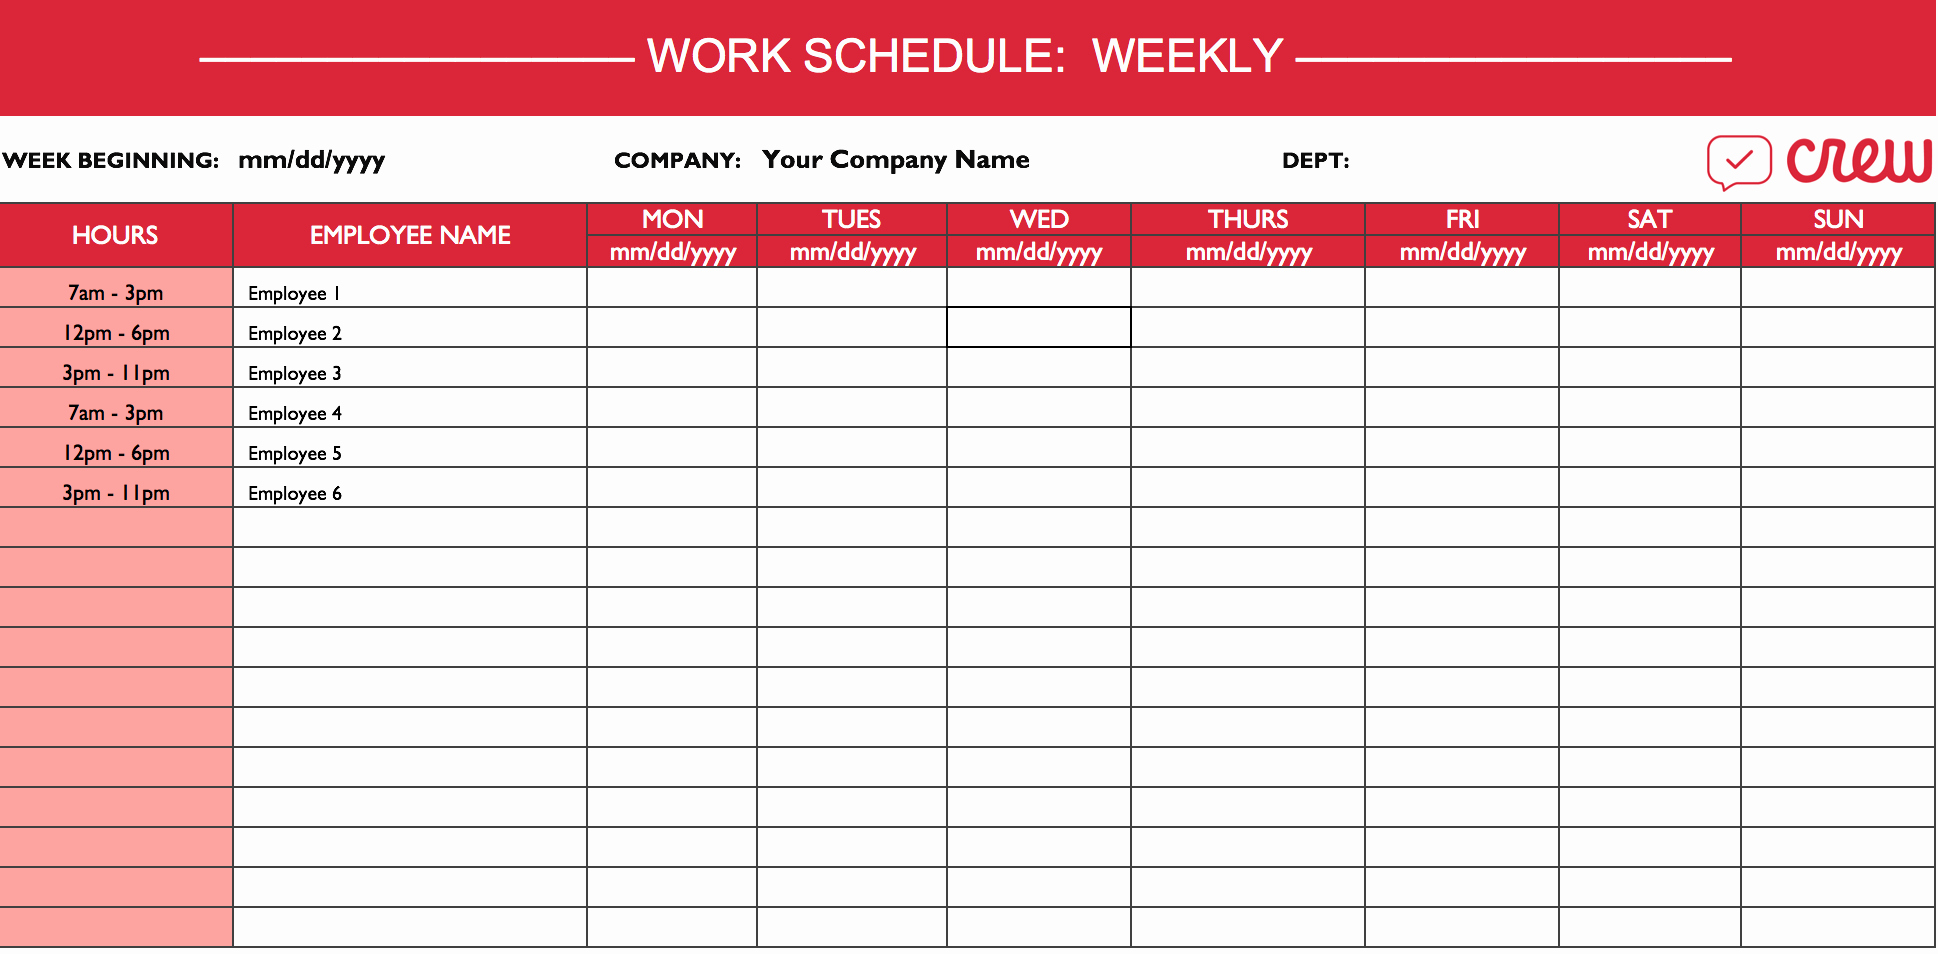 Monthly Staff Schedule Template Beautiful Weekly Work Schedule Template I Crew